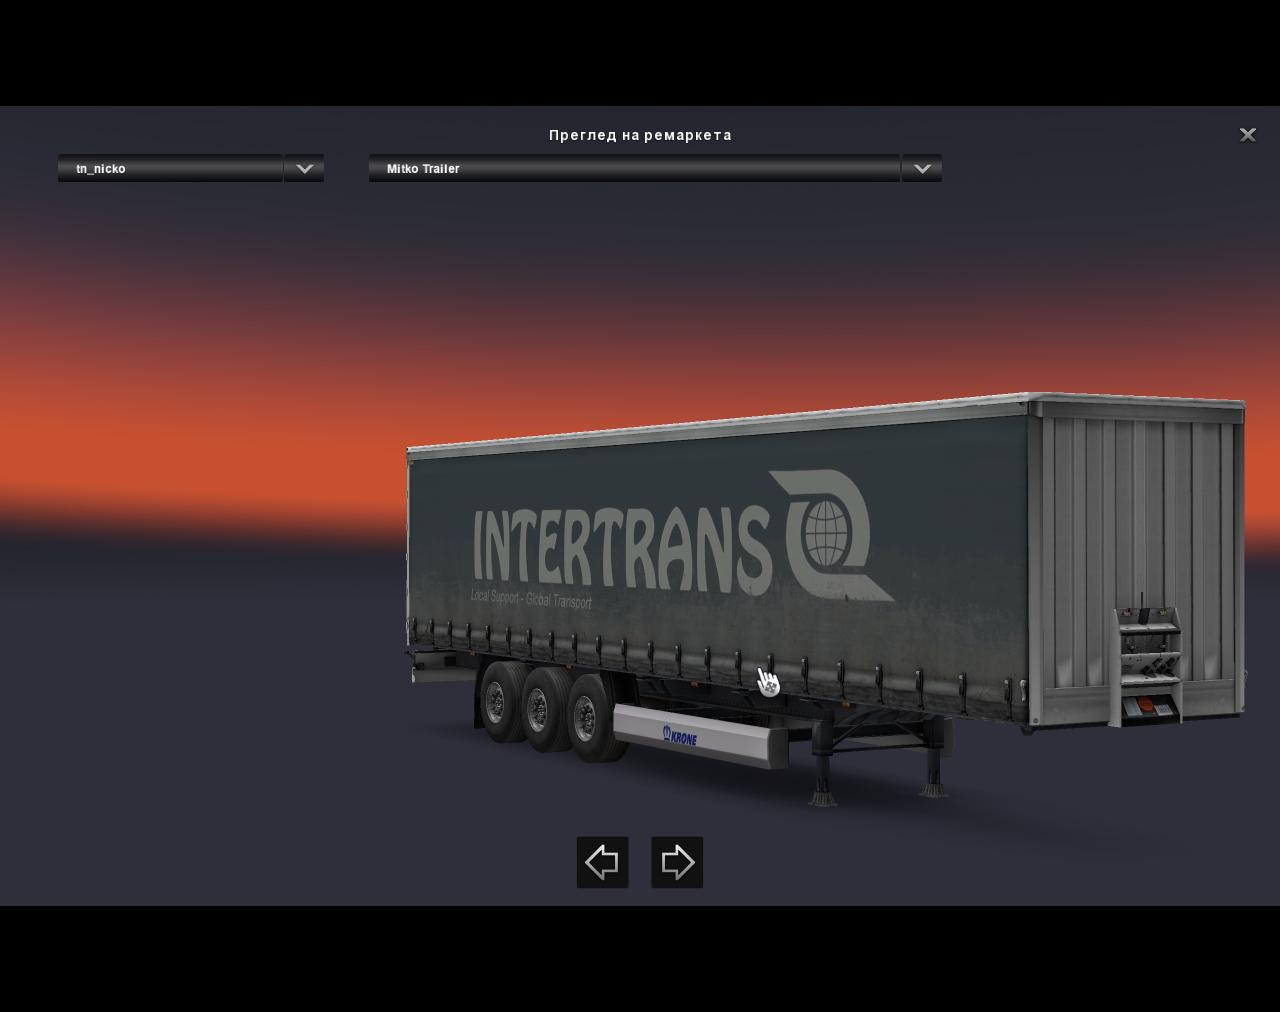 inter-trans-dirty-trailer-1-26_4.png